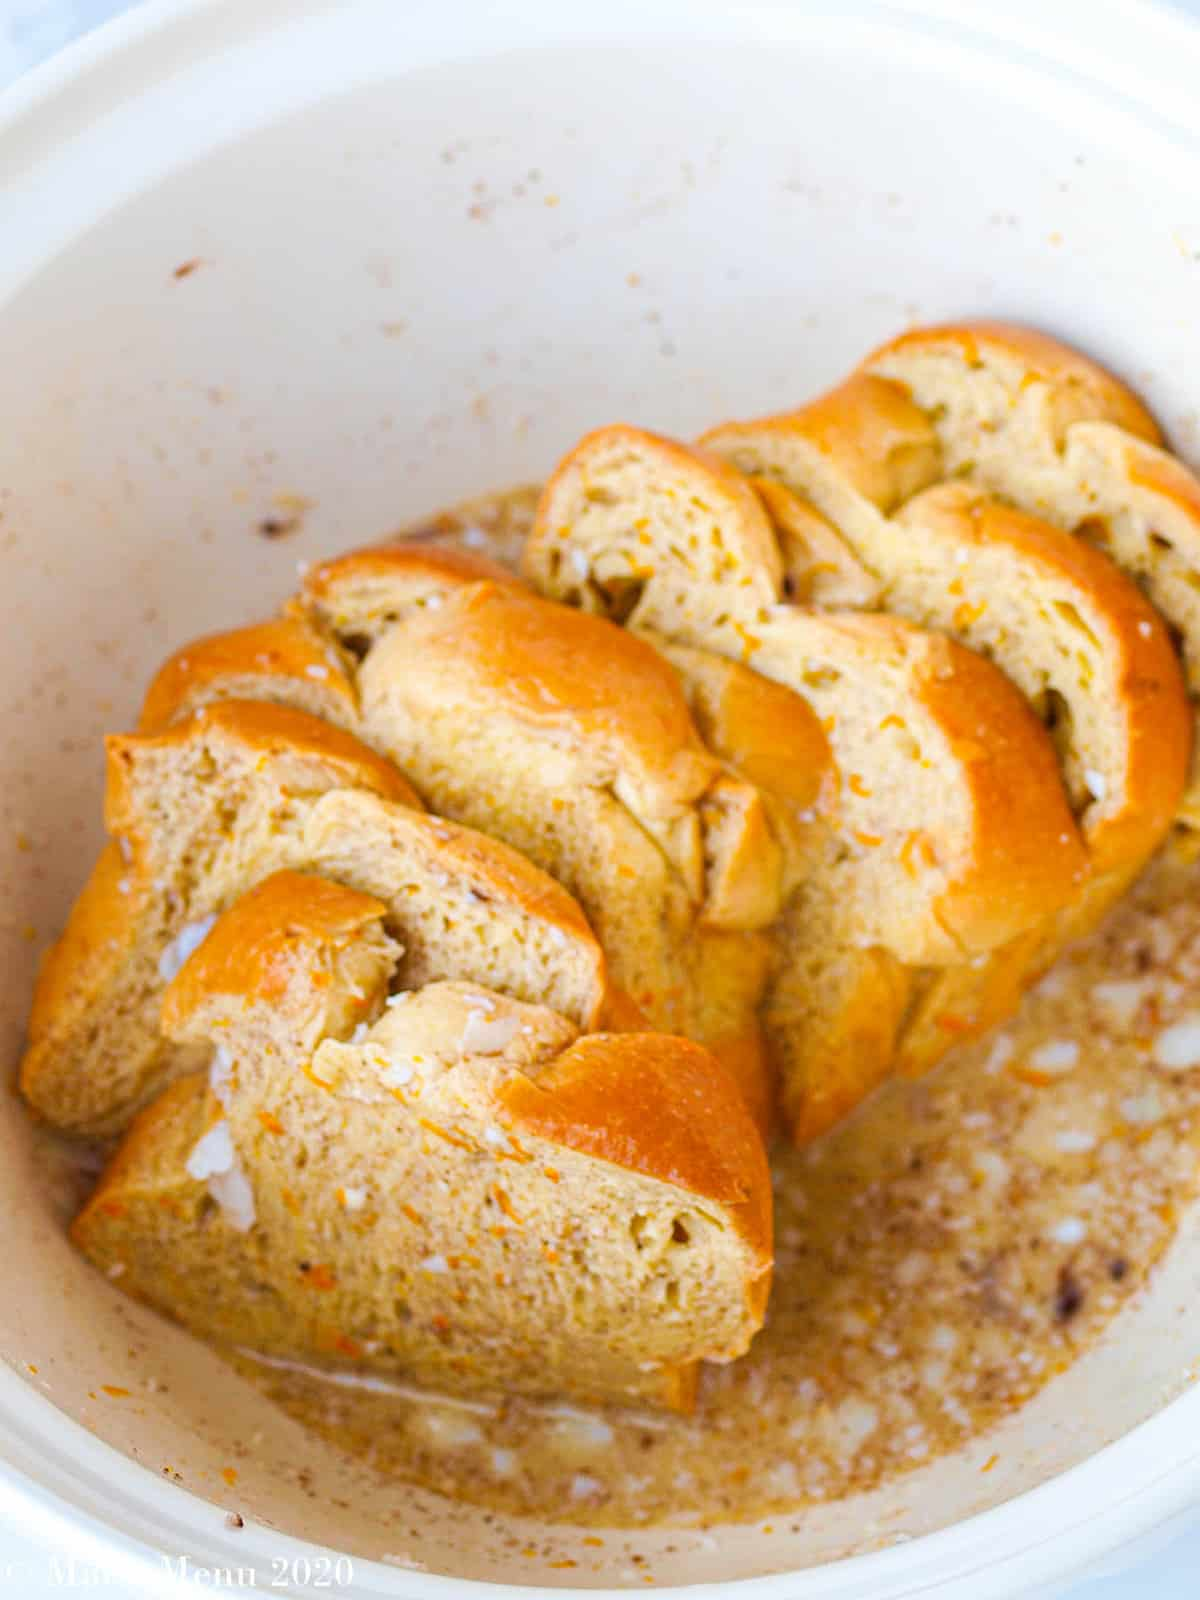 Brioche bread soaking in the egg mixture in a large white mixing bowl